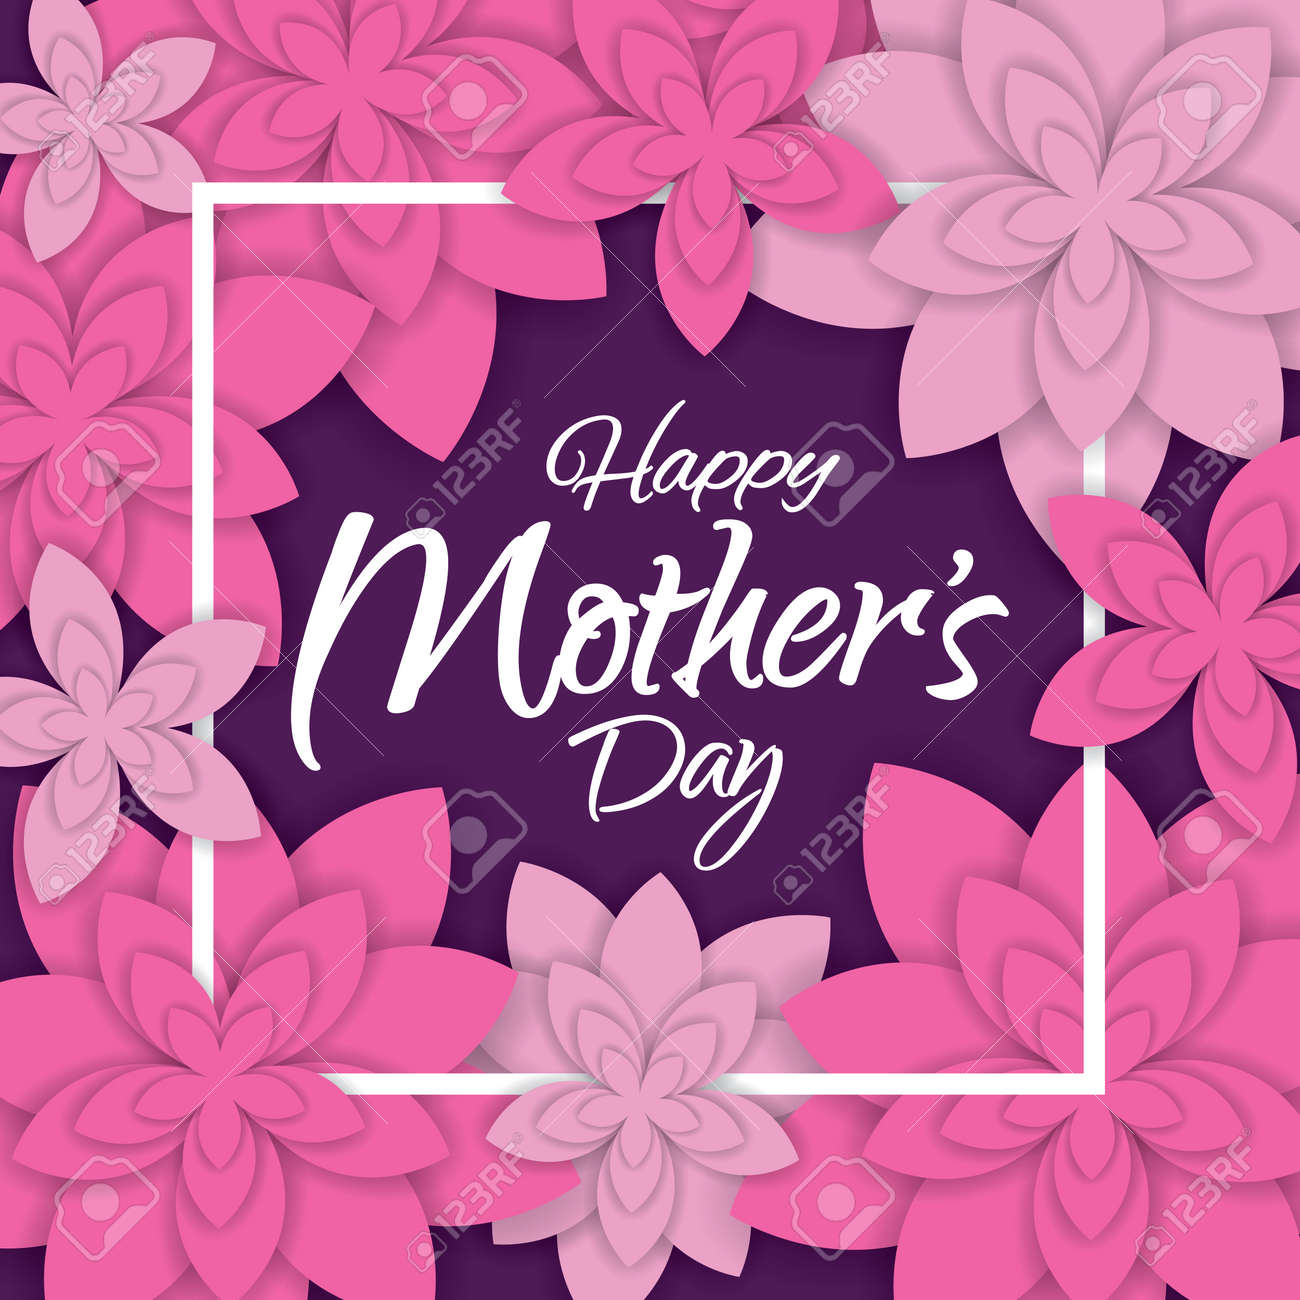 Happy Motheru0027s Day Layout Design With Flowers. Vector Illustration. Happy  Mothers Day Cute Feminine